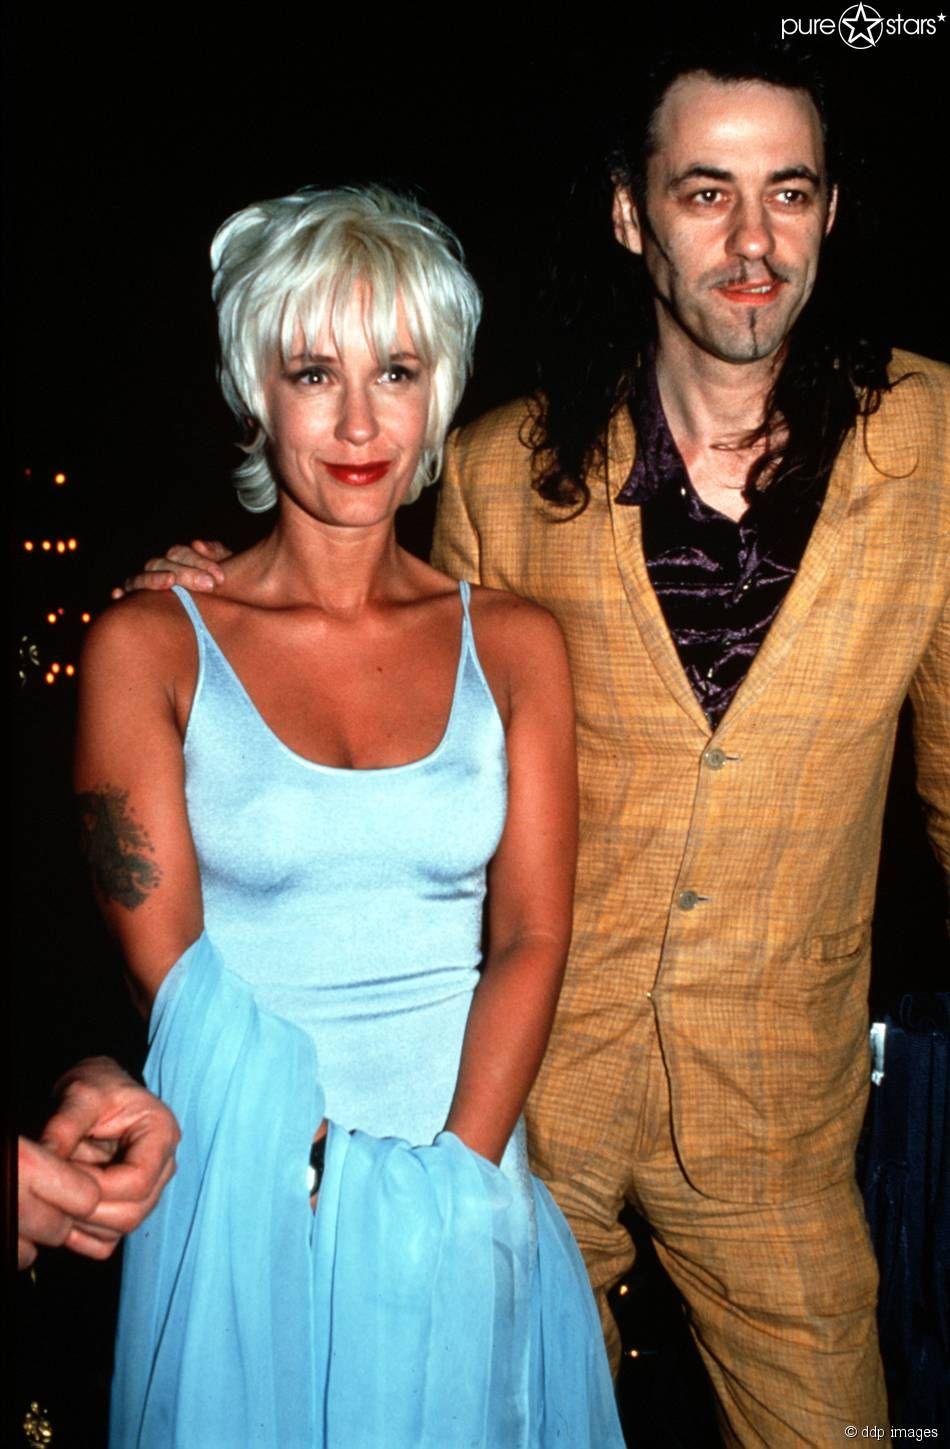 bob geldof and paula yates - Google Search | Bob geldof, Paula, Bob